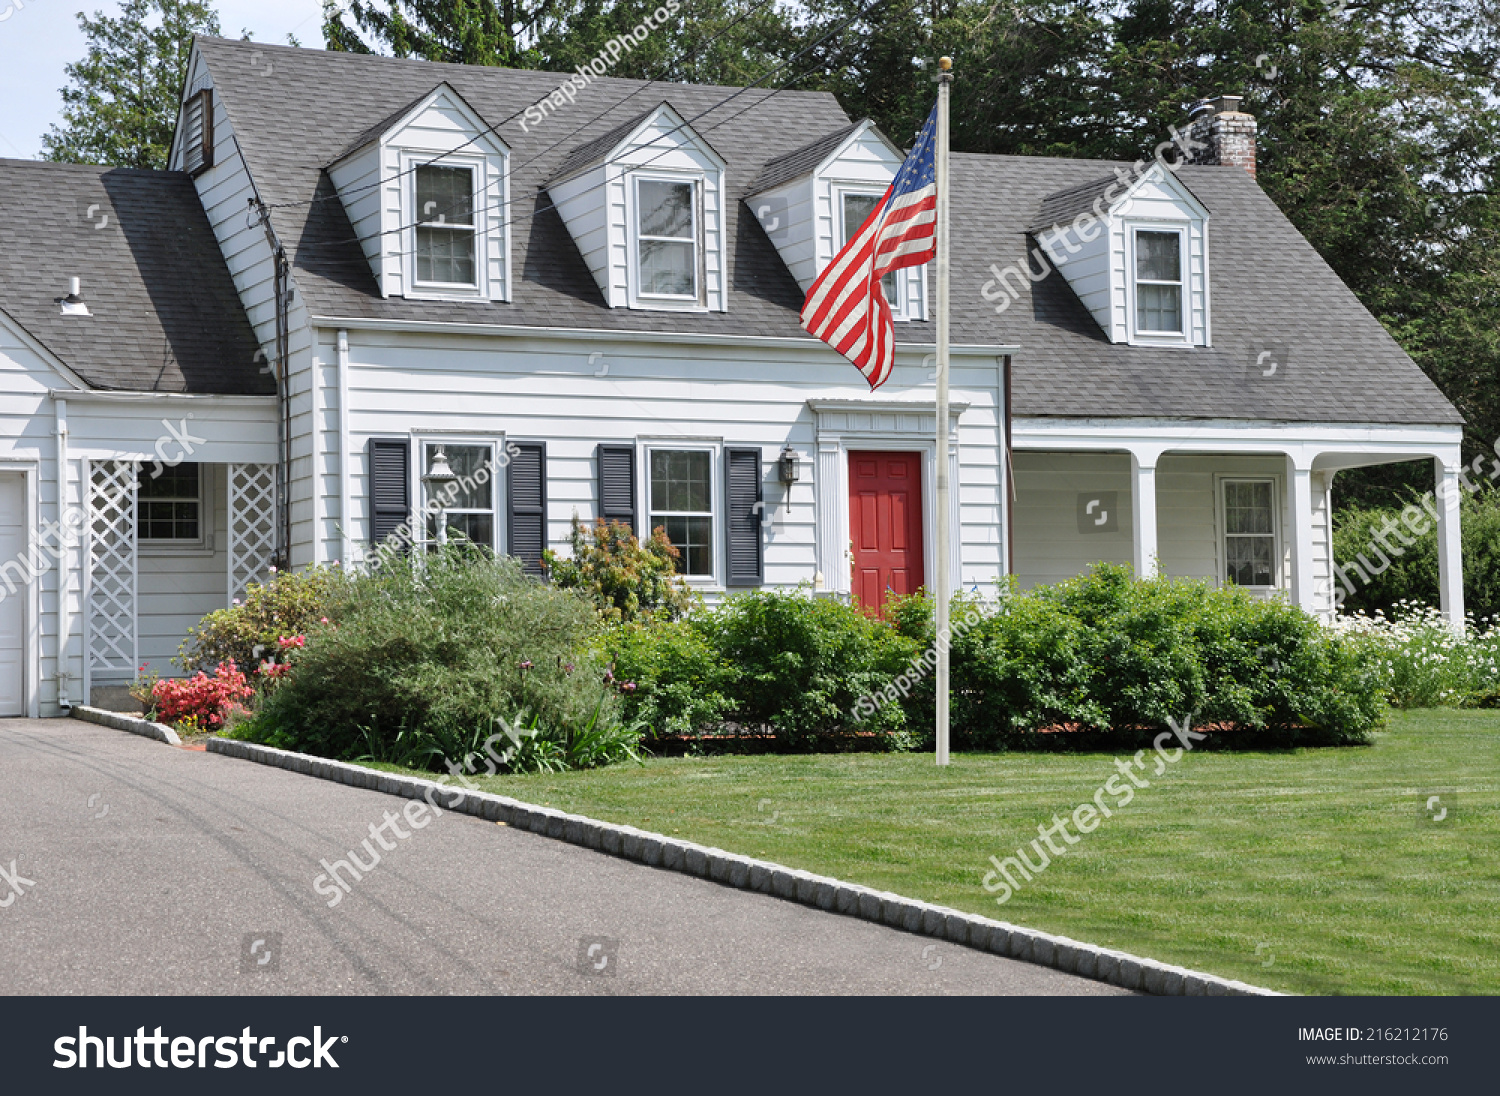 akdnhk the in flag american stock shape photo arranged an of garden flowers